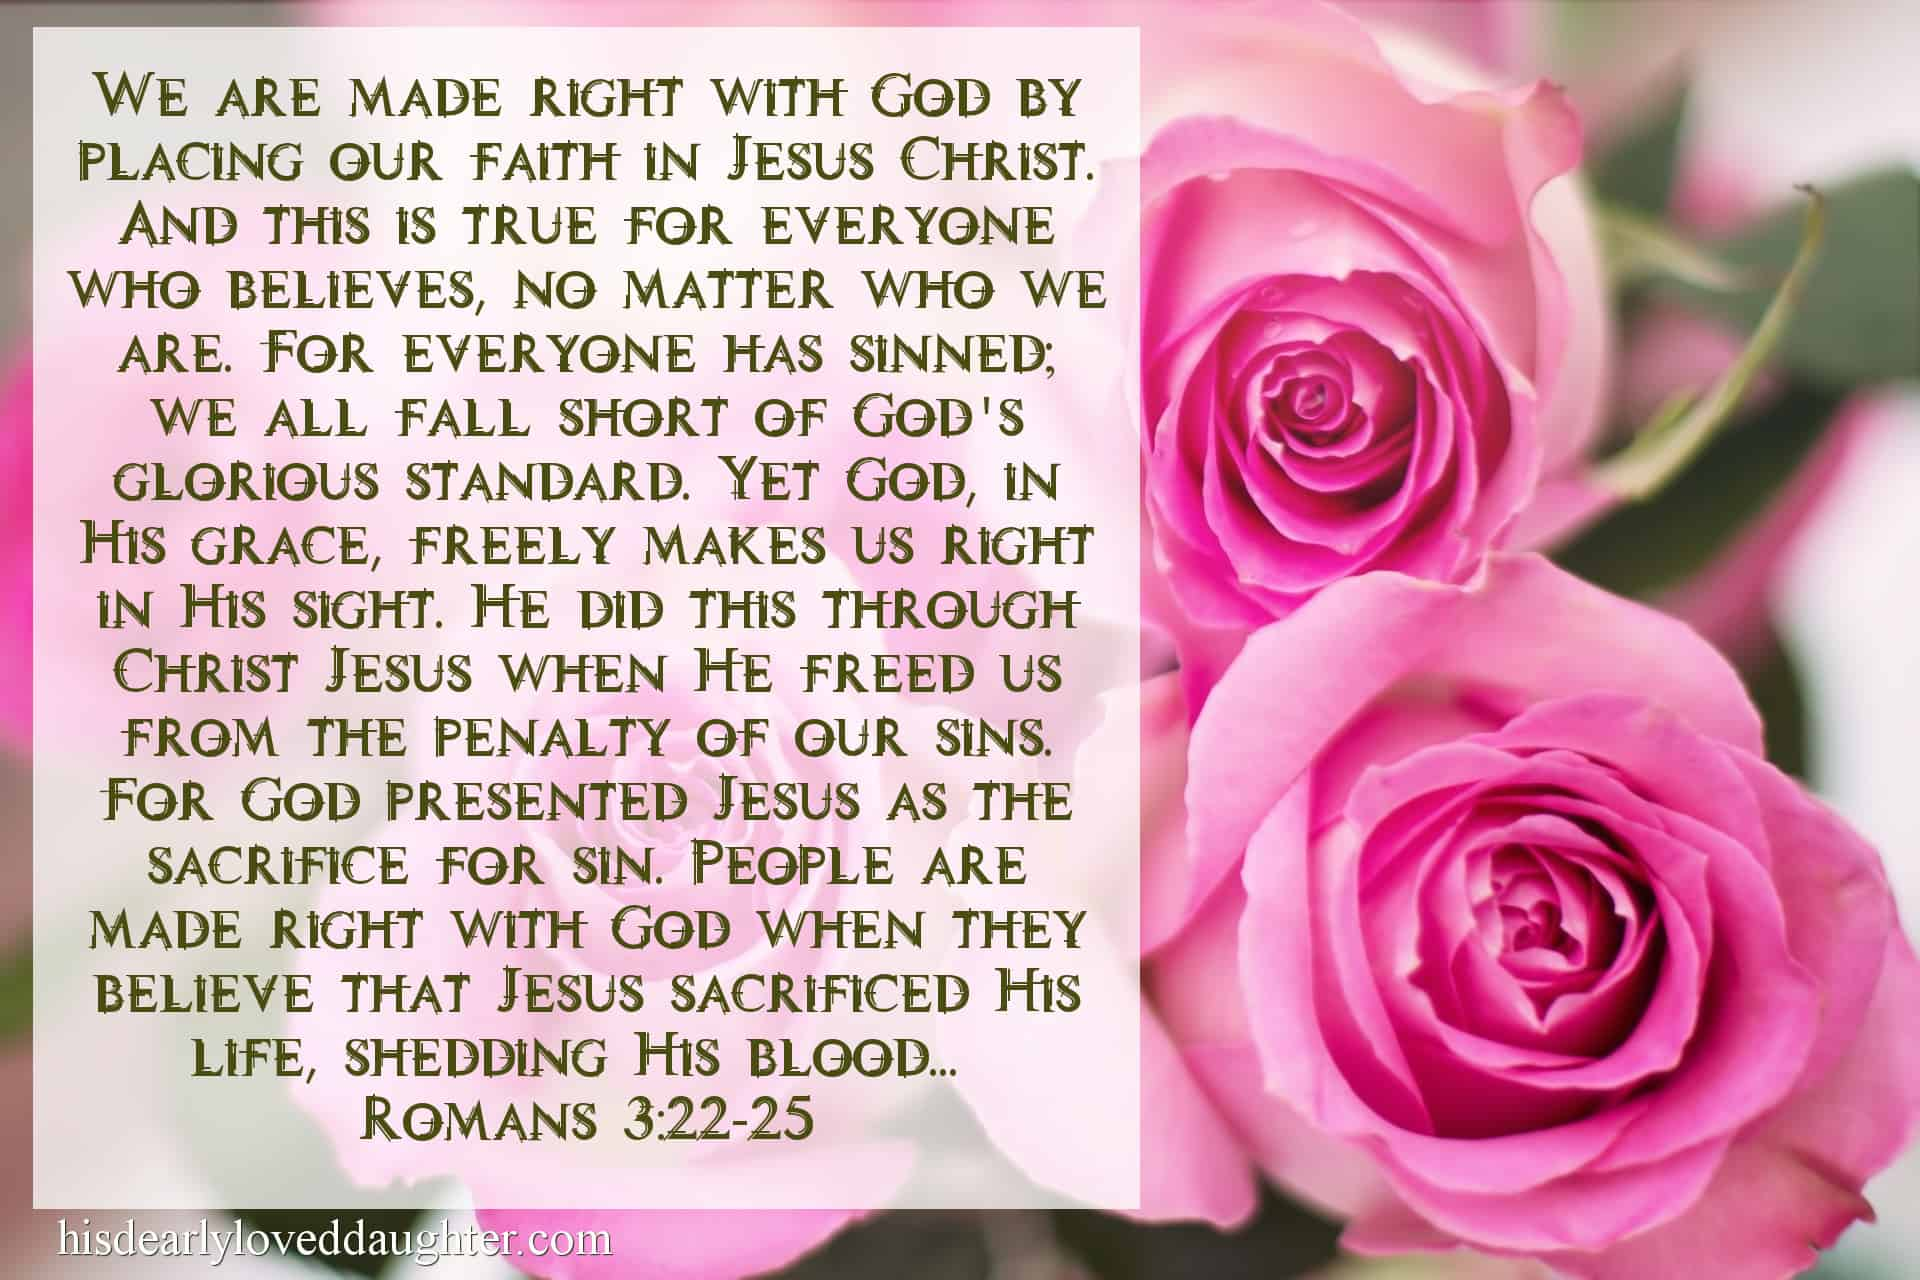 We are made right with God by placing our faith in Jesus Christ. And this is true for everyone who believes, no matter who we are. For everyone has sinned; we all fall short of God's glorious standard. Yet God, in His grace, freely makes us right in His sight. He did this through Christ Jesus when He freed us from the penalty of our sins. For God presented Jesus as the sacrifice for sin. People are made right with God when they believe that Jesus sacrificed His life, shedding His blood...Romans 3:22-25